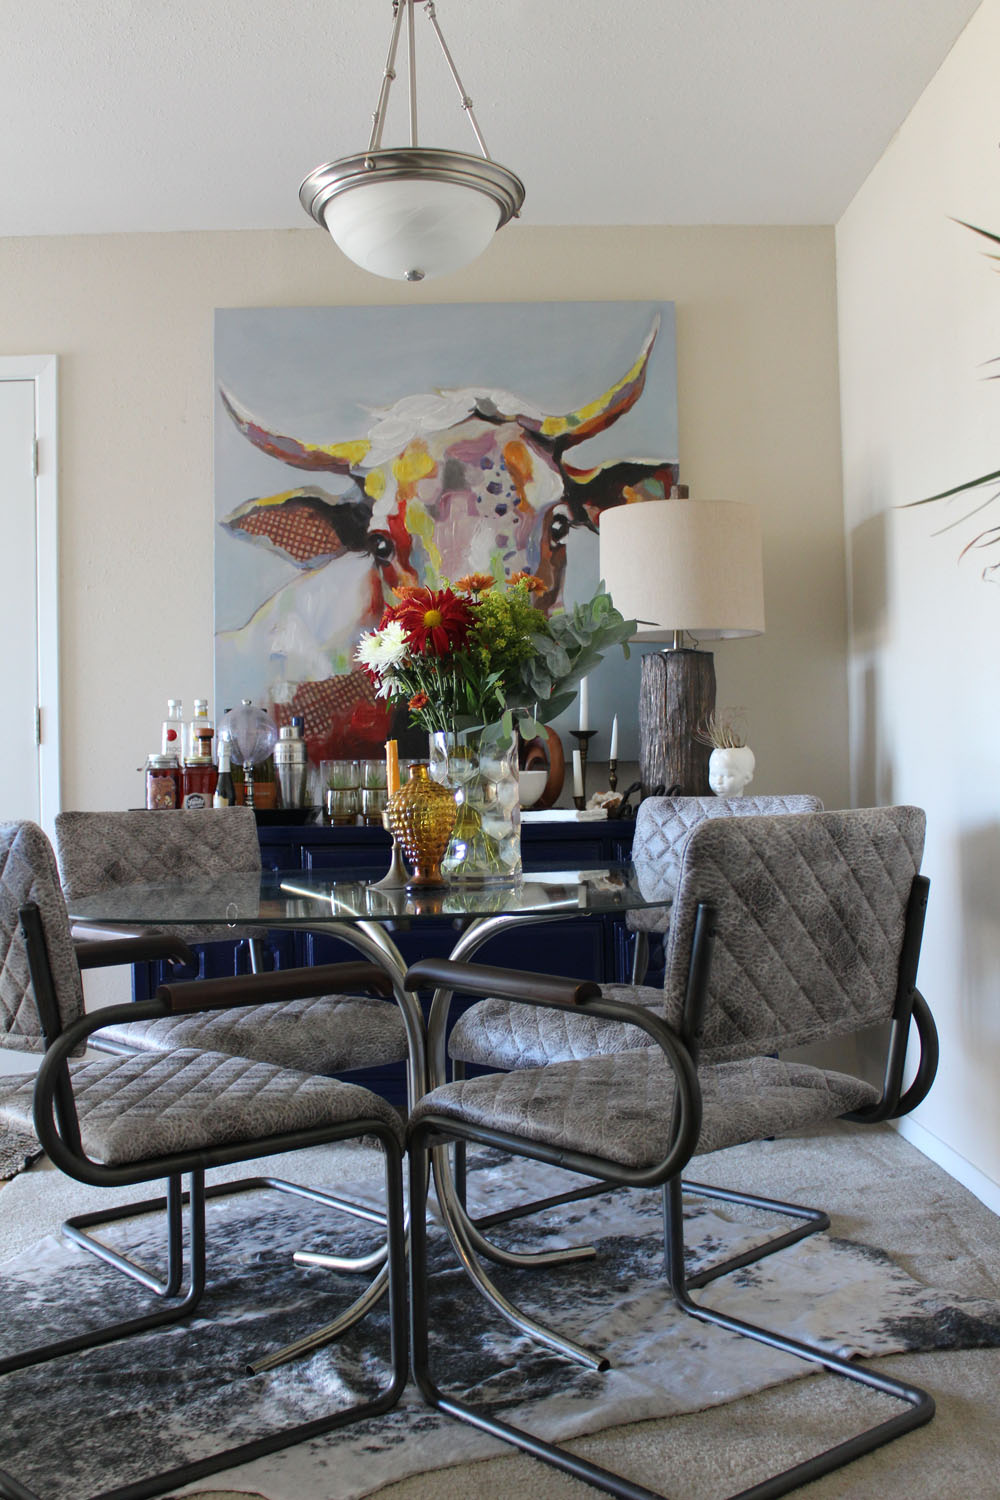 10 Large Living Room Ideas To Fall In Love With: Bold, Eclectic Home Tour For The #FABFALLFEST